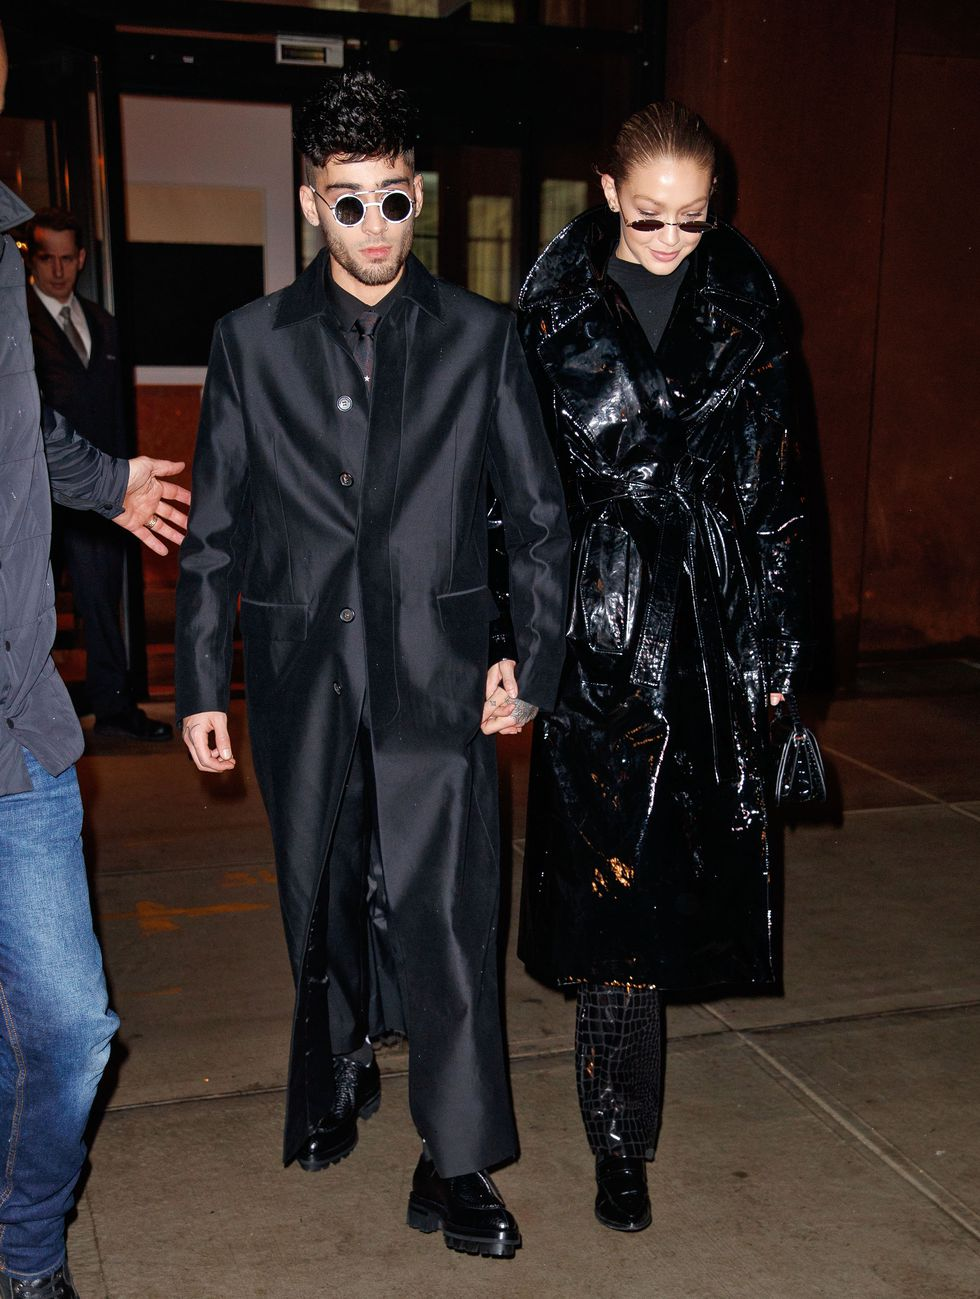 Gigi Hadid and Zayn rock patent black trench coats complete with matrix-style sunglasses - R.I.P. Gee Zee. Photo by Getty Images